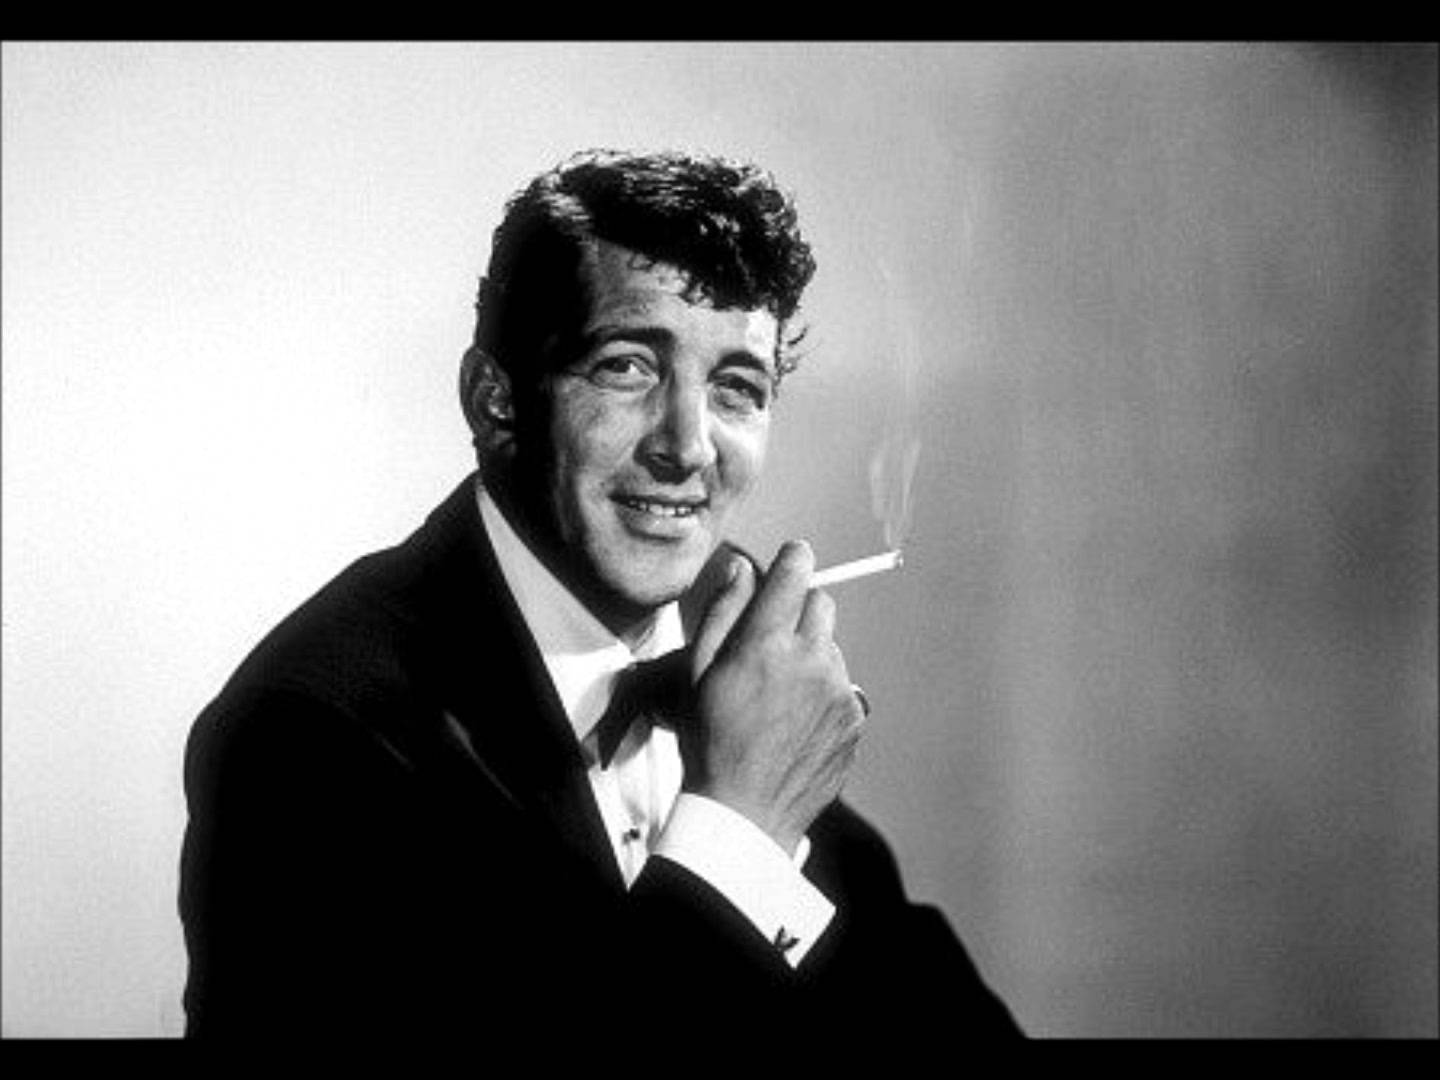 DEAN MARTIN - HOLIDAY SONGS 1007